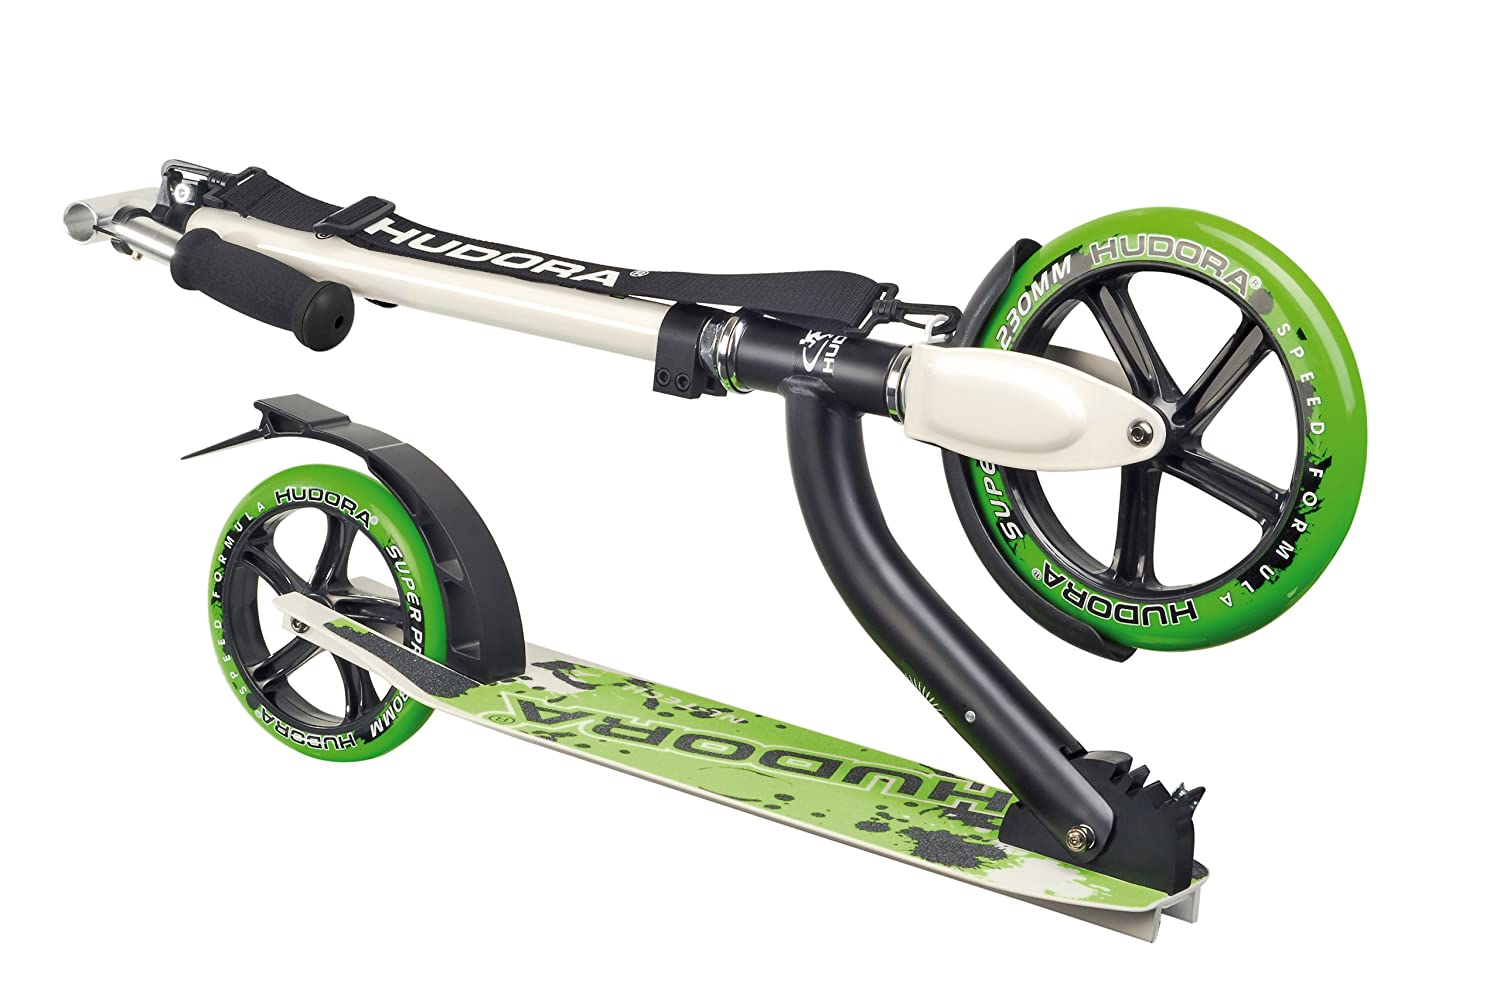 Patinete color verde y plateado. Hudora Bold Wheel